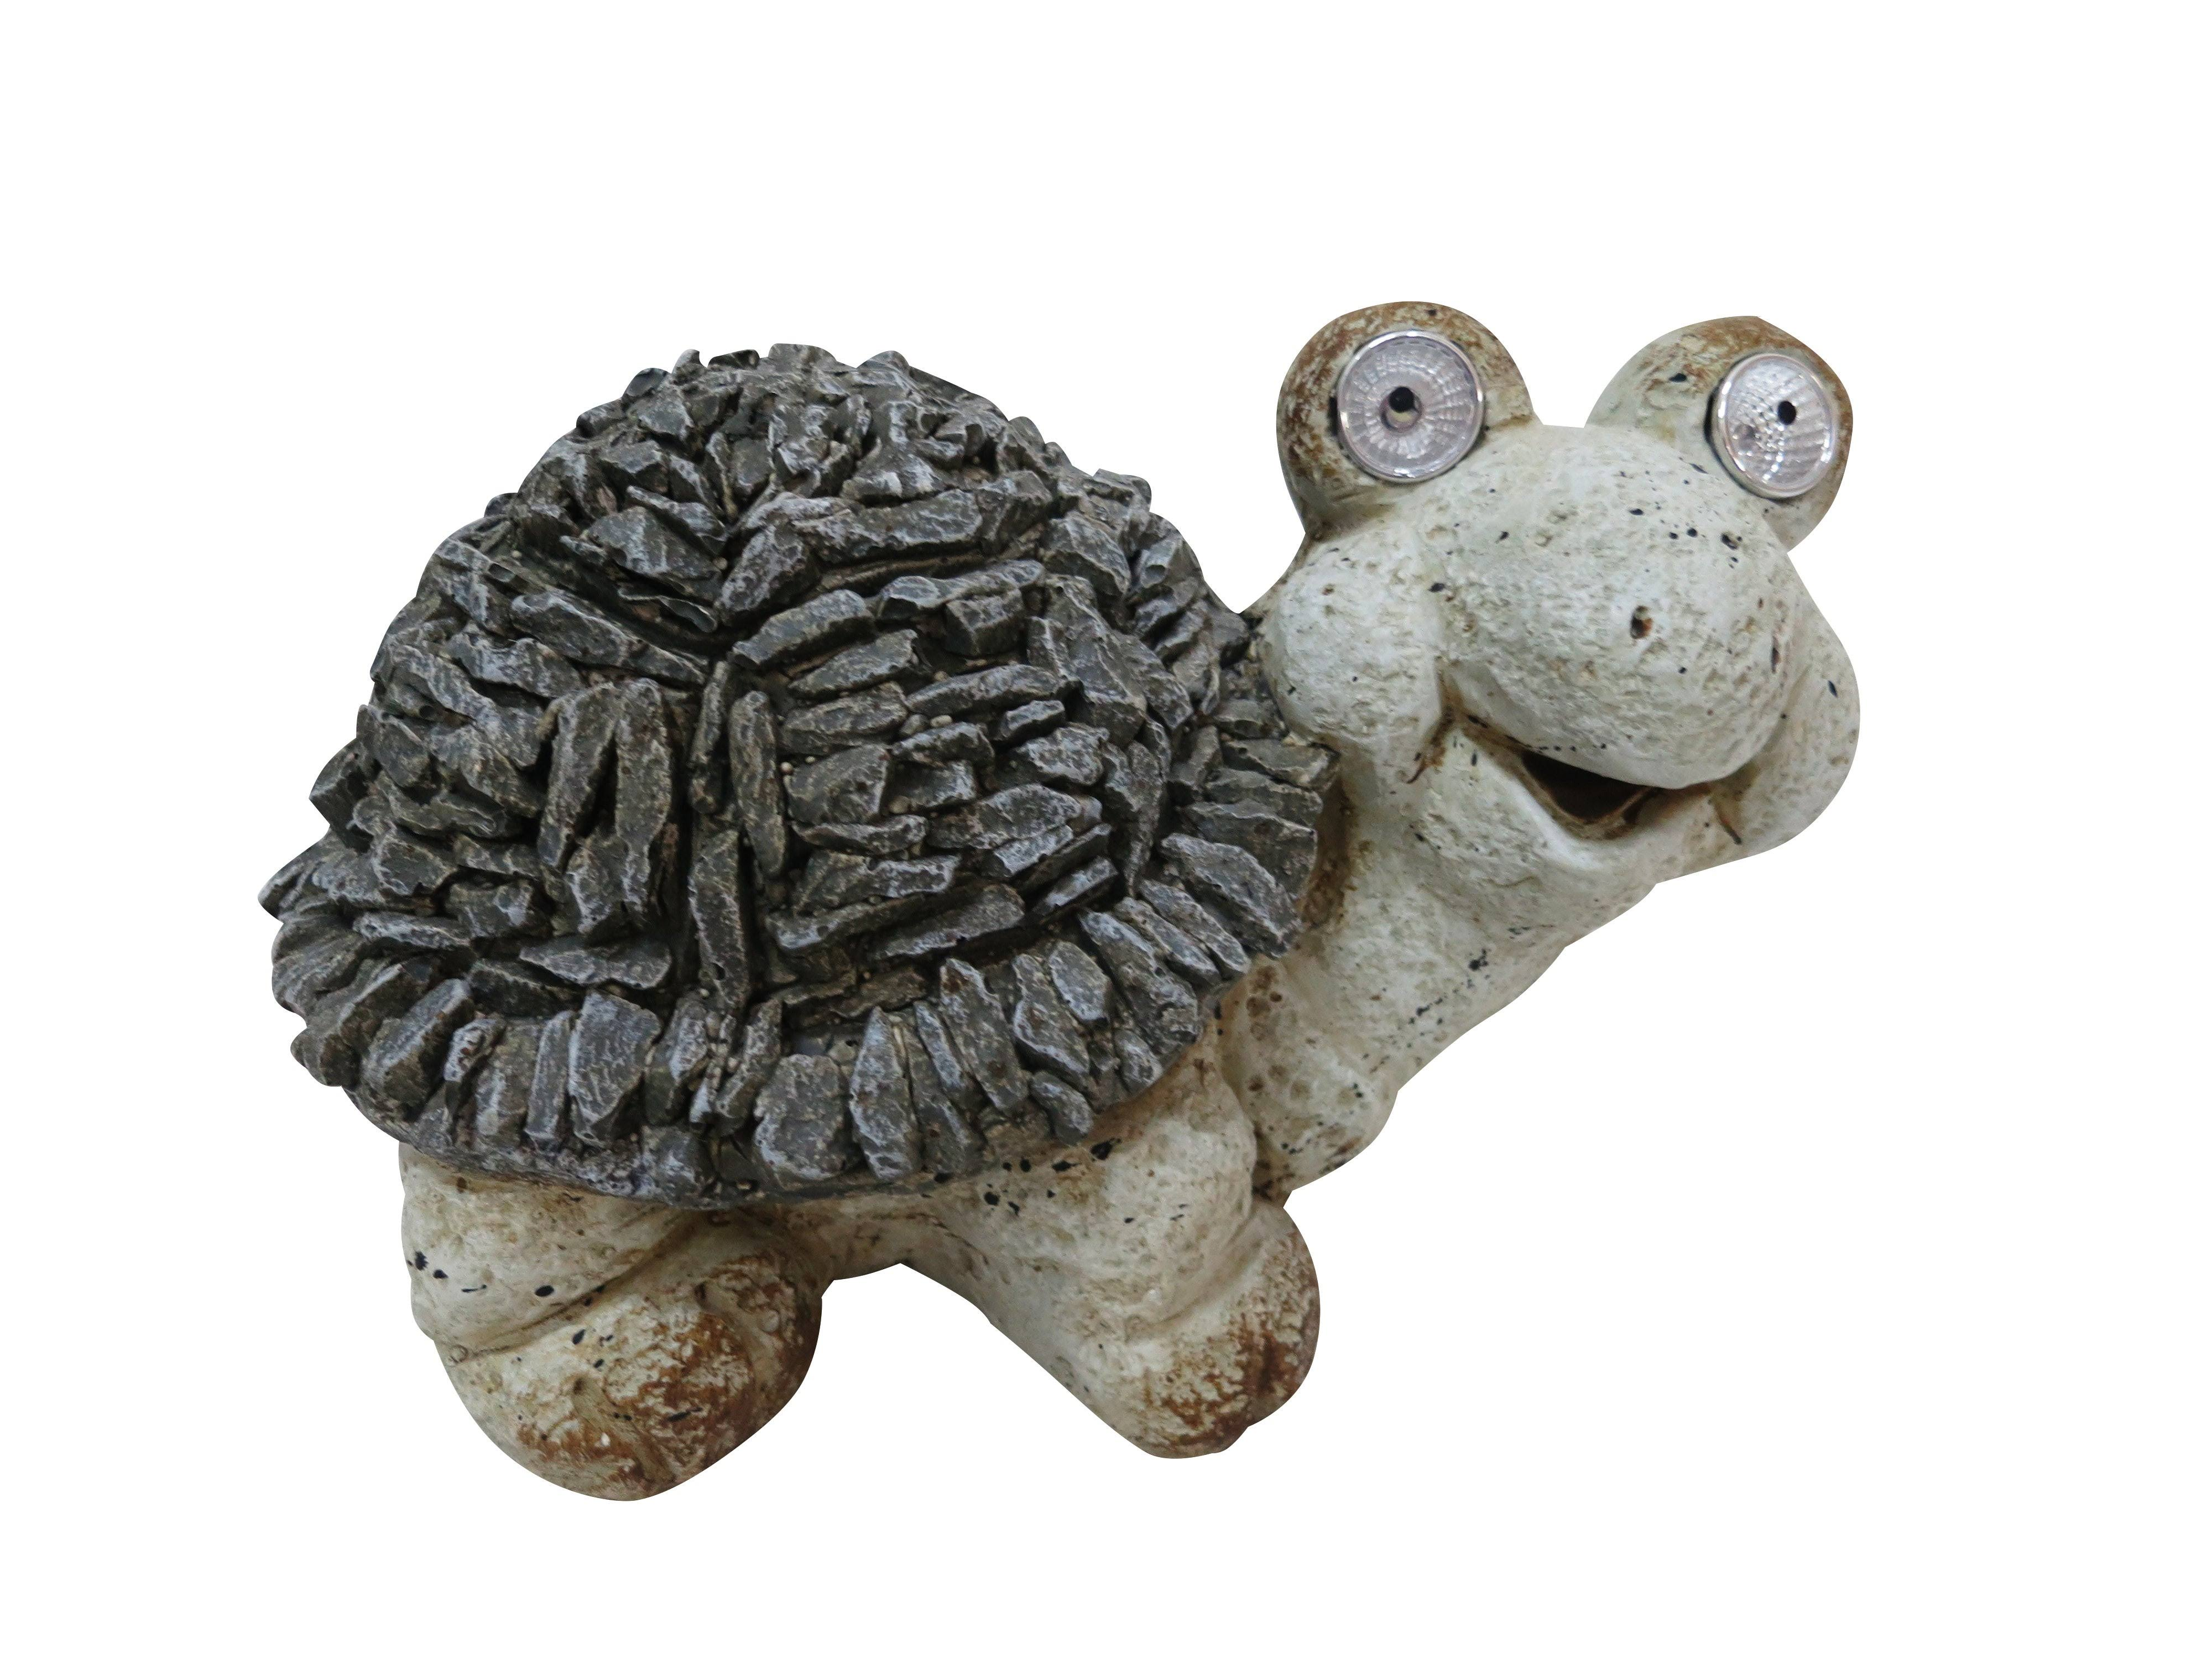 Alpine Solar Turtle Statue w/ LED Lights, 7 inch Tall